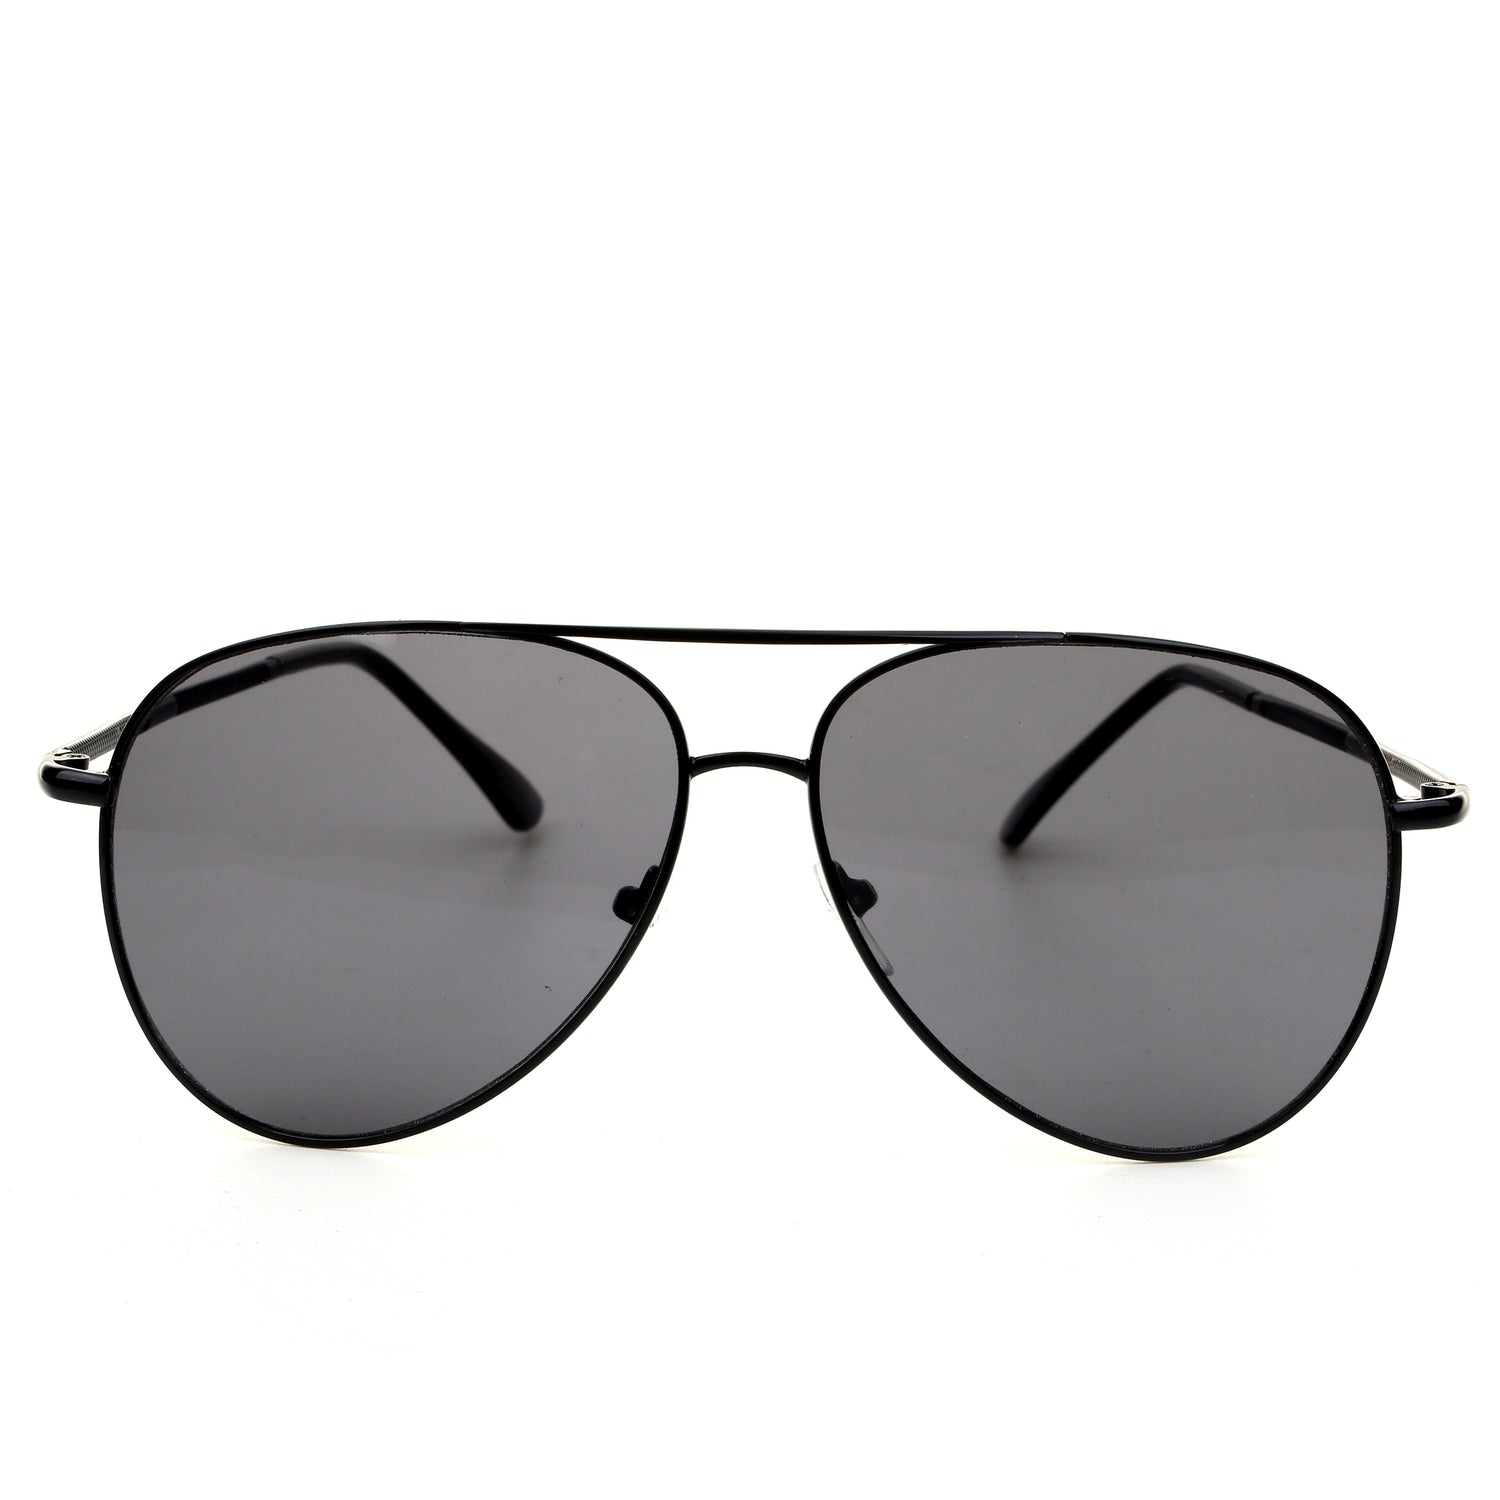 Serendipity Taylor Sunglasses Black